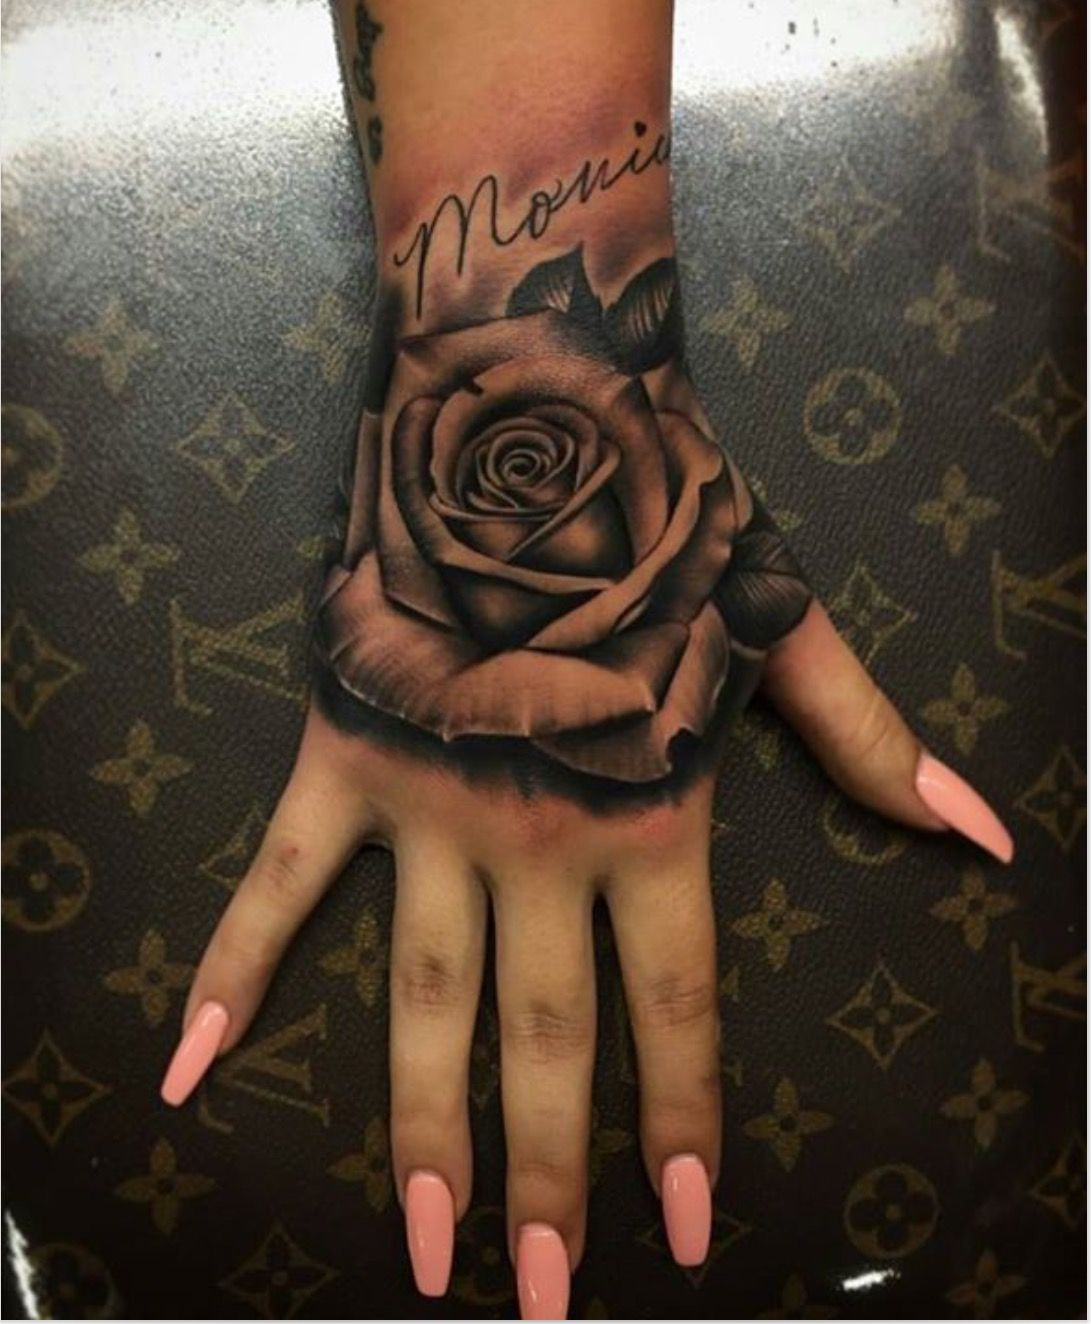 Islayyyx3 Hand Tattoos Hand Tattoos For Women Rose Hand Tattoo